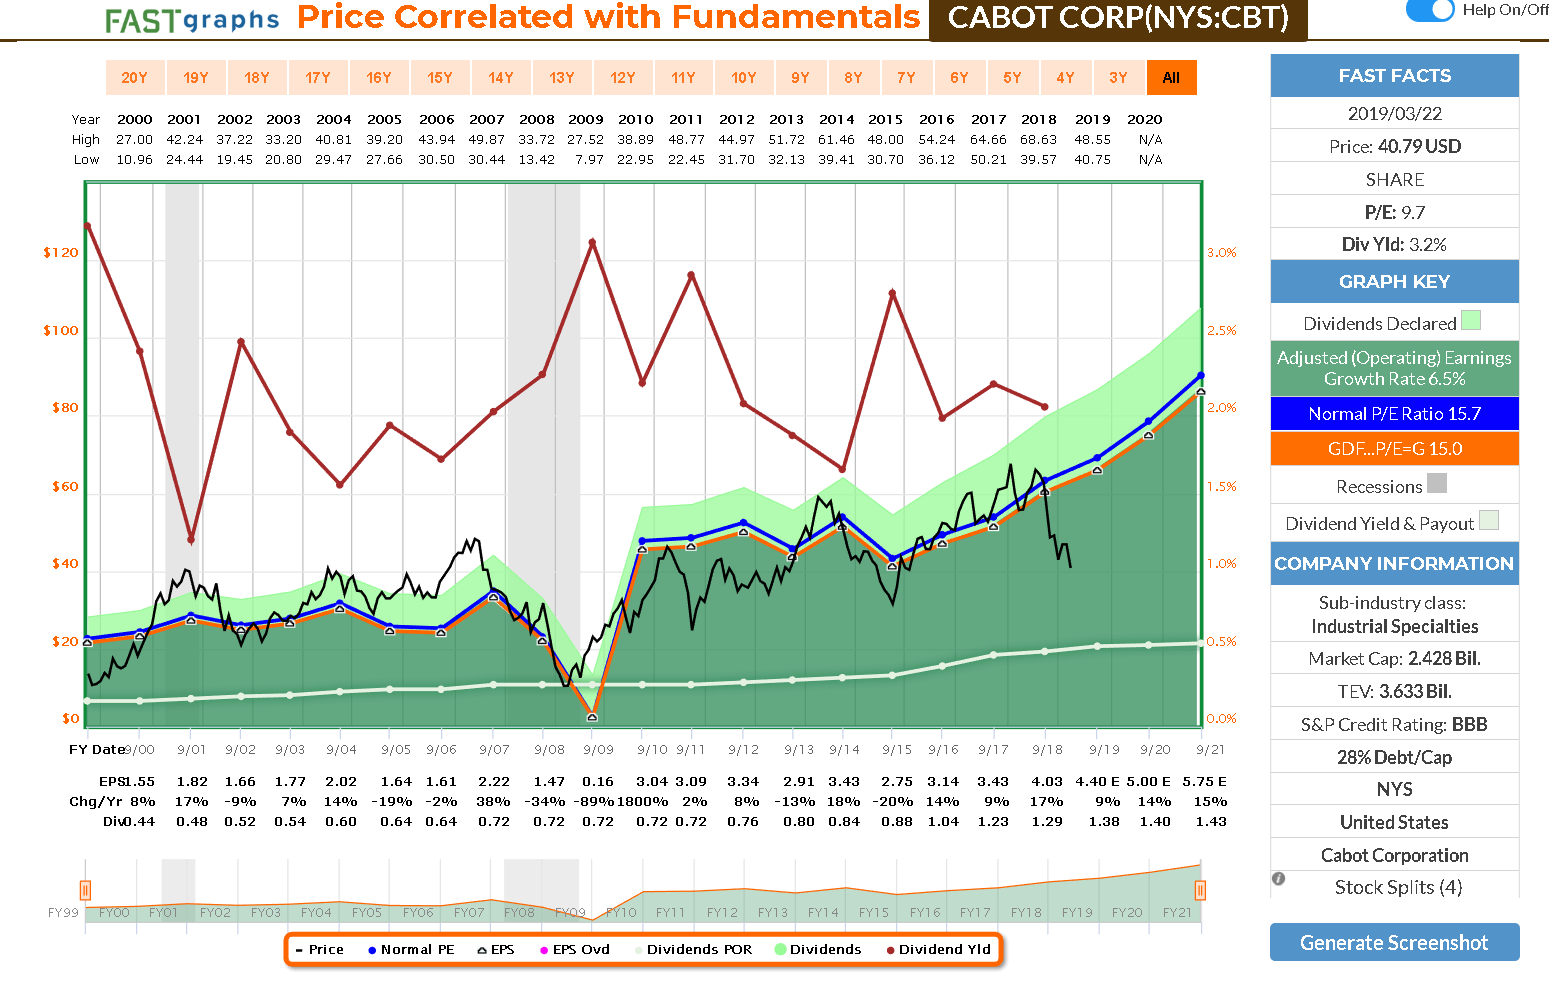 Cabot Corporation - Why I Just Doubled My Position - Cabot